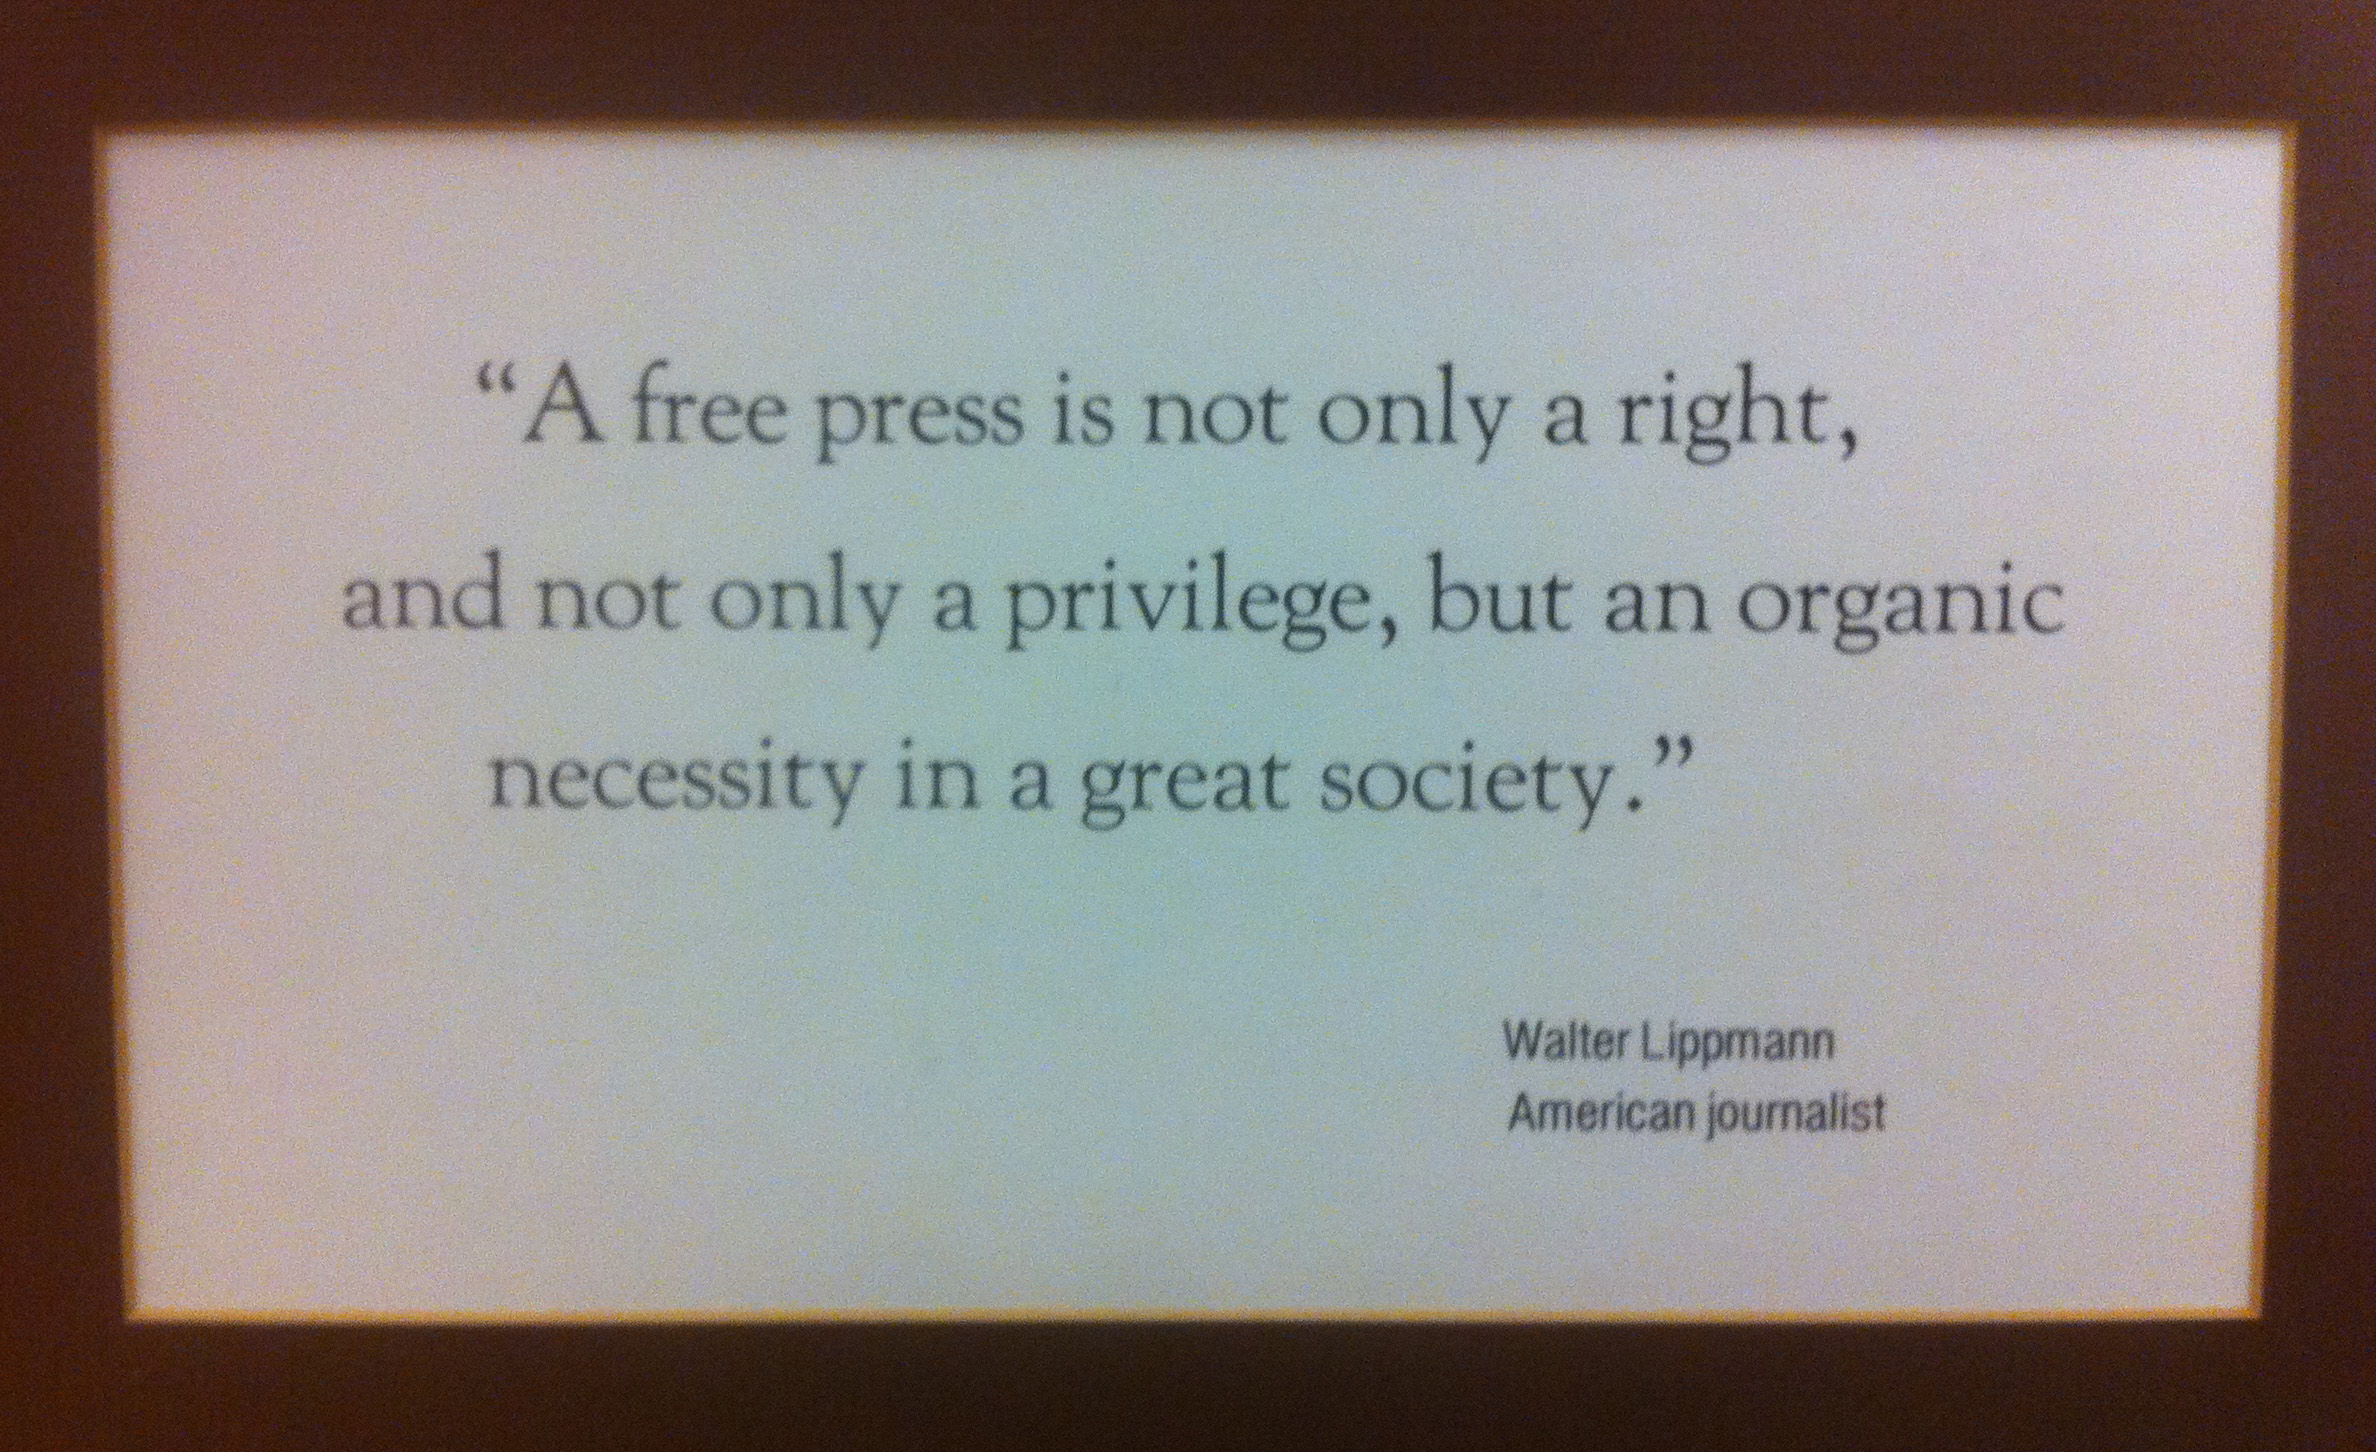 A free press is not only a right, and not only a privilege, but an organic necessity in a great society. Walter Lippmann